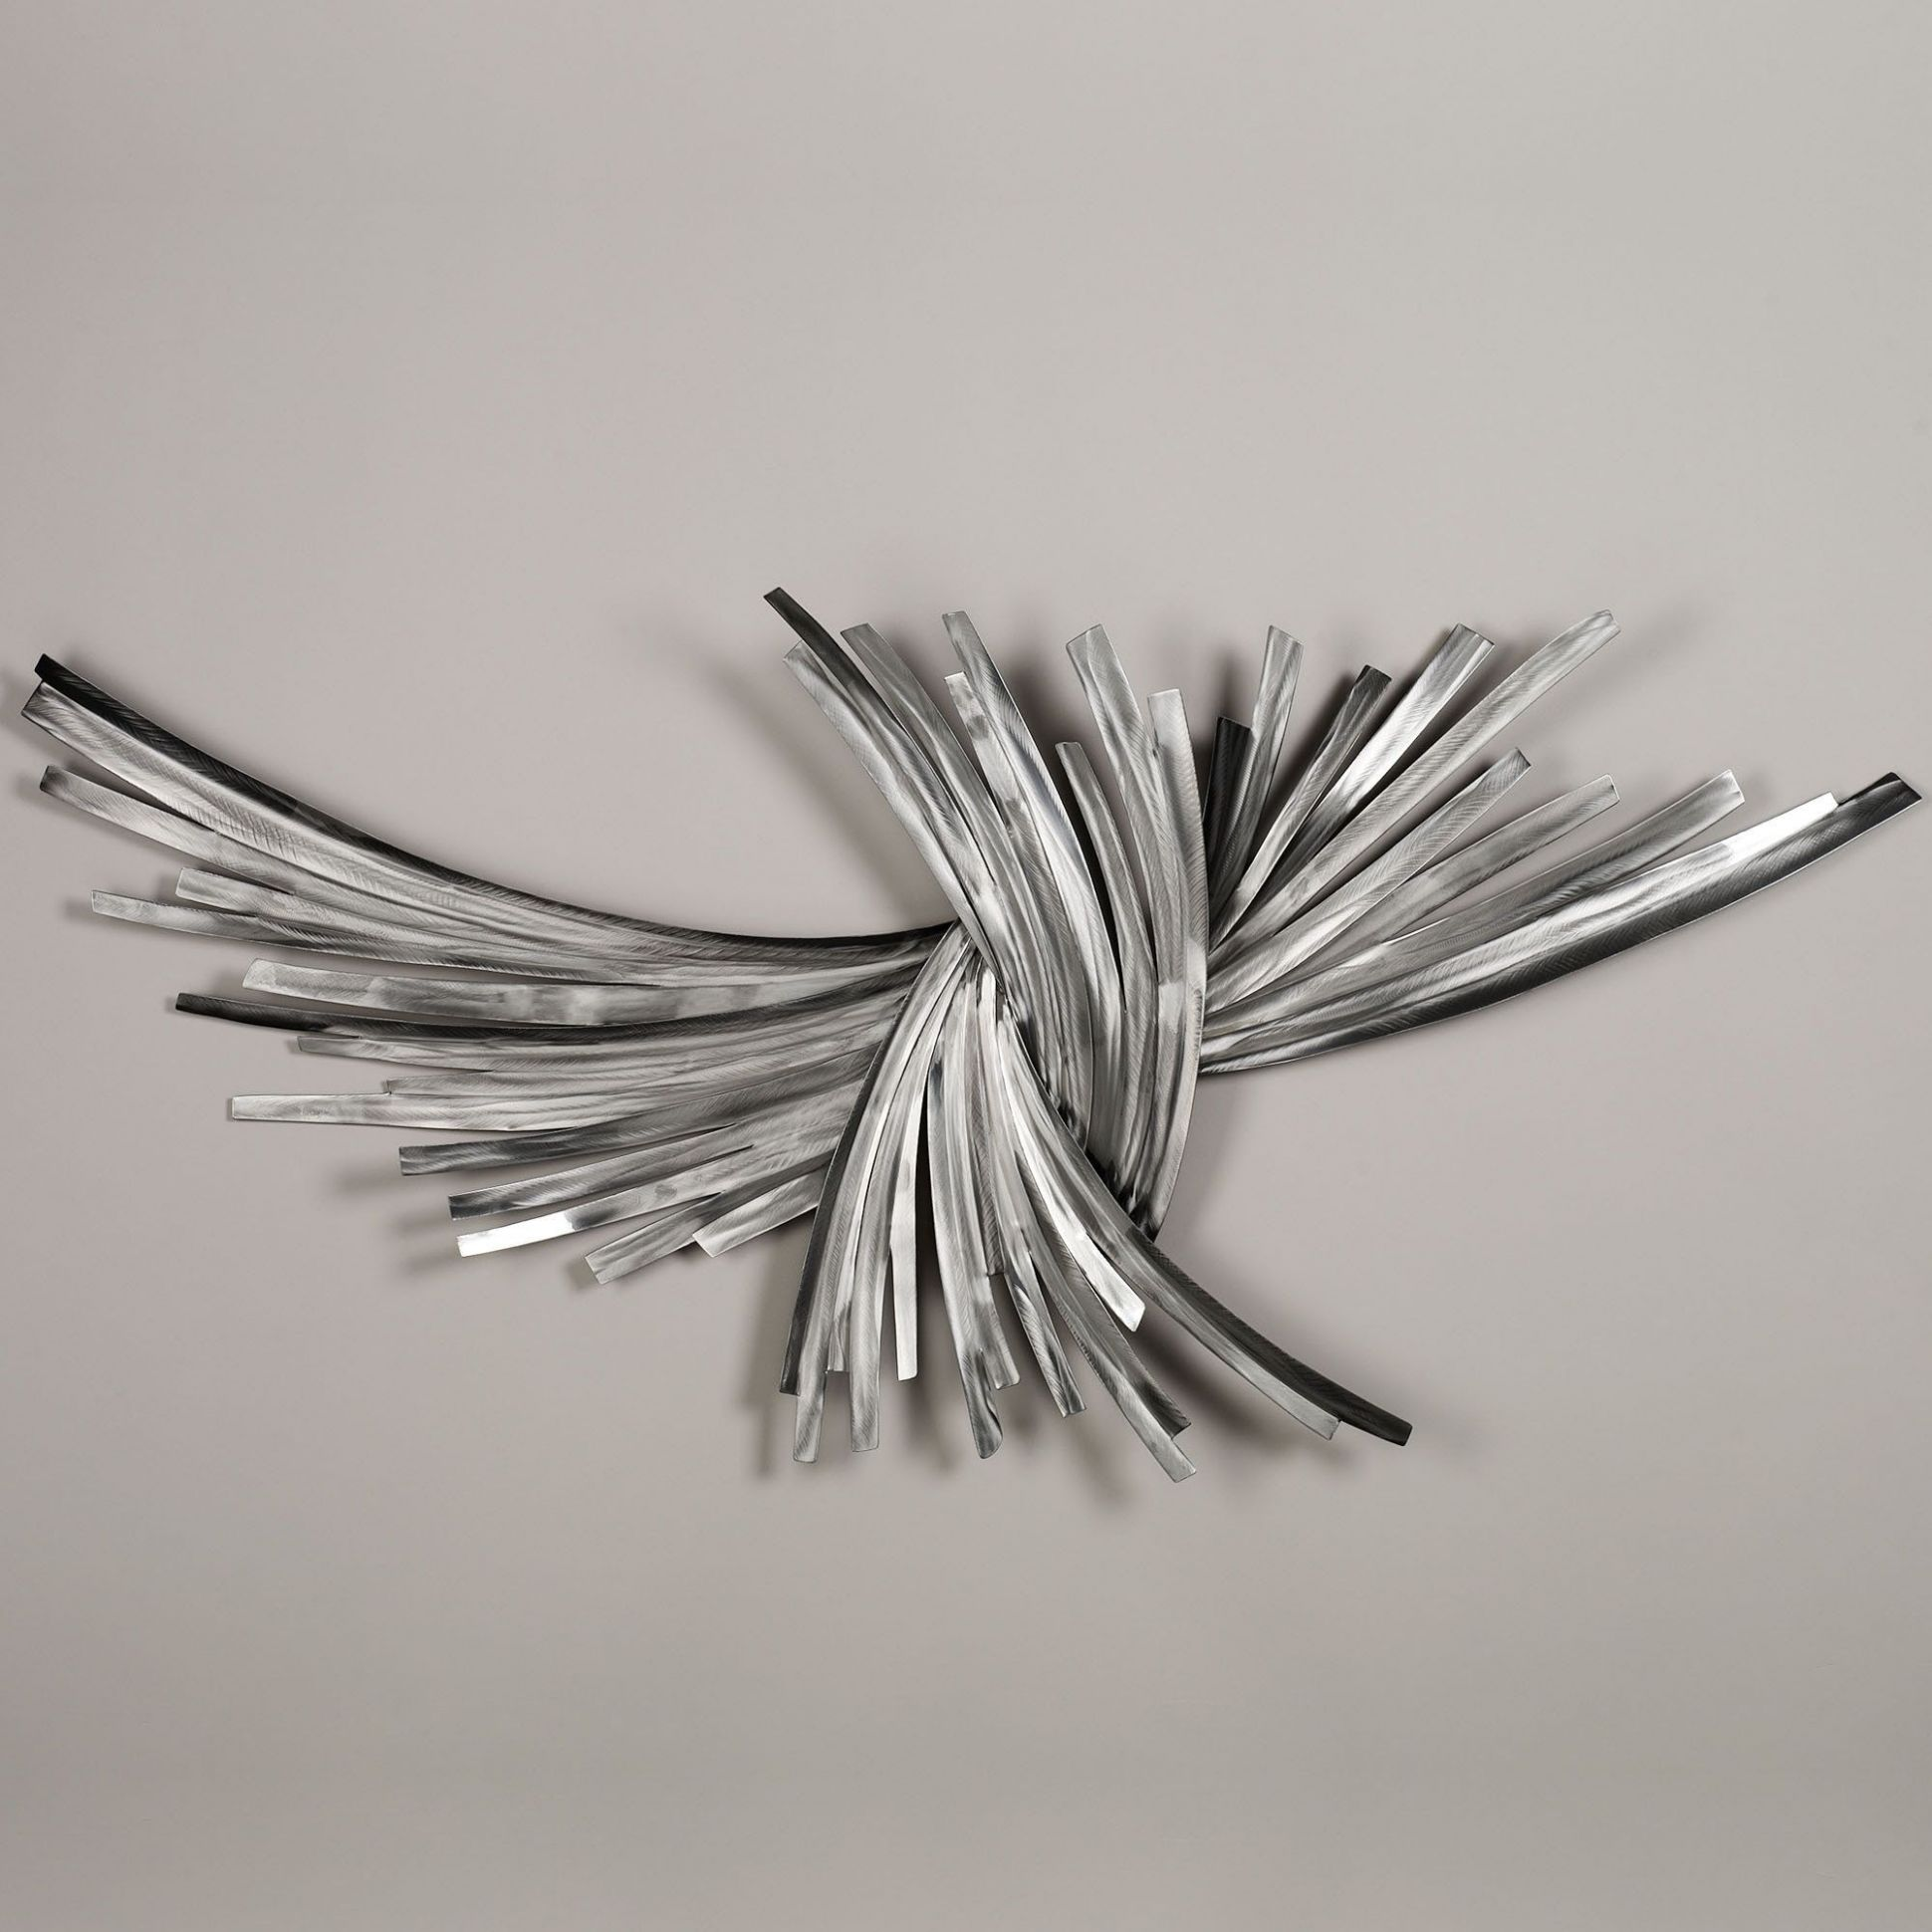 Infinity Silver Metal Wall Sculpture (With images) | Silver metal ...